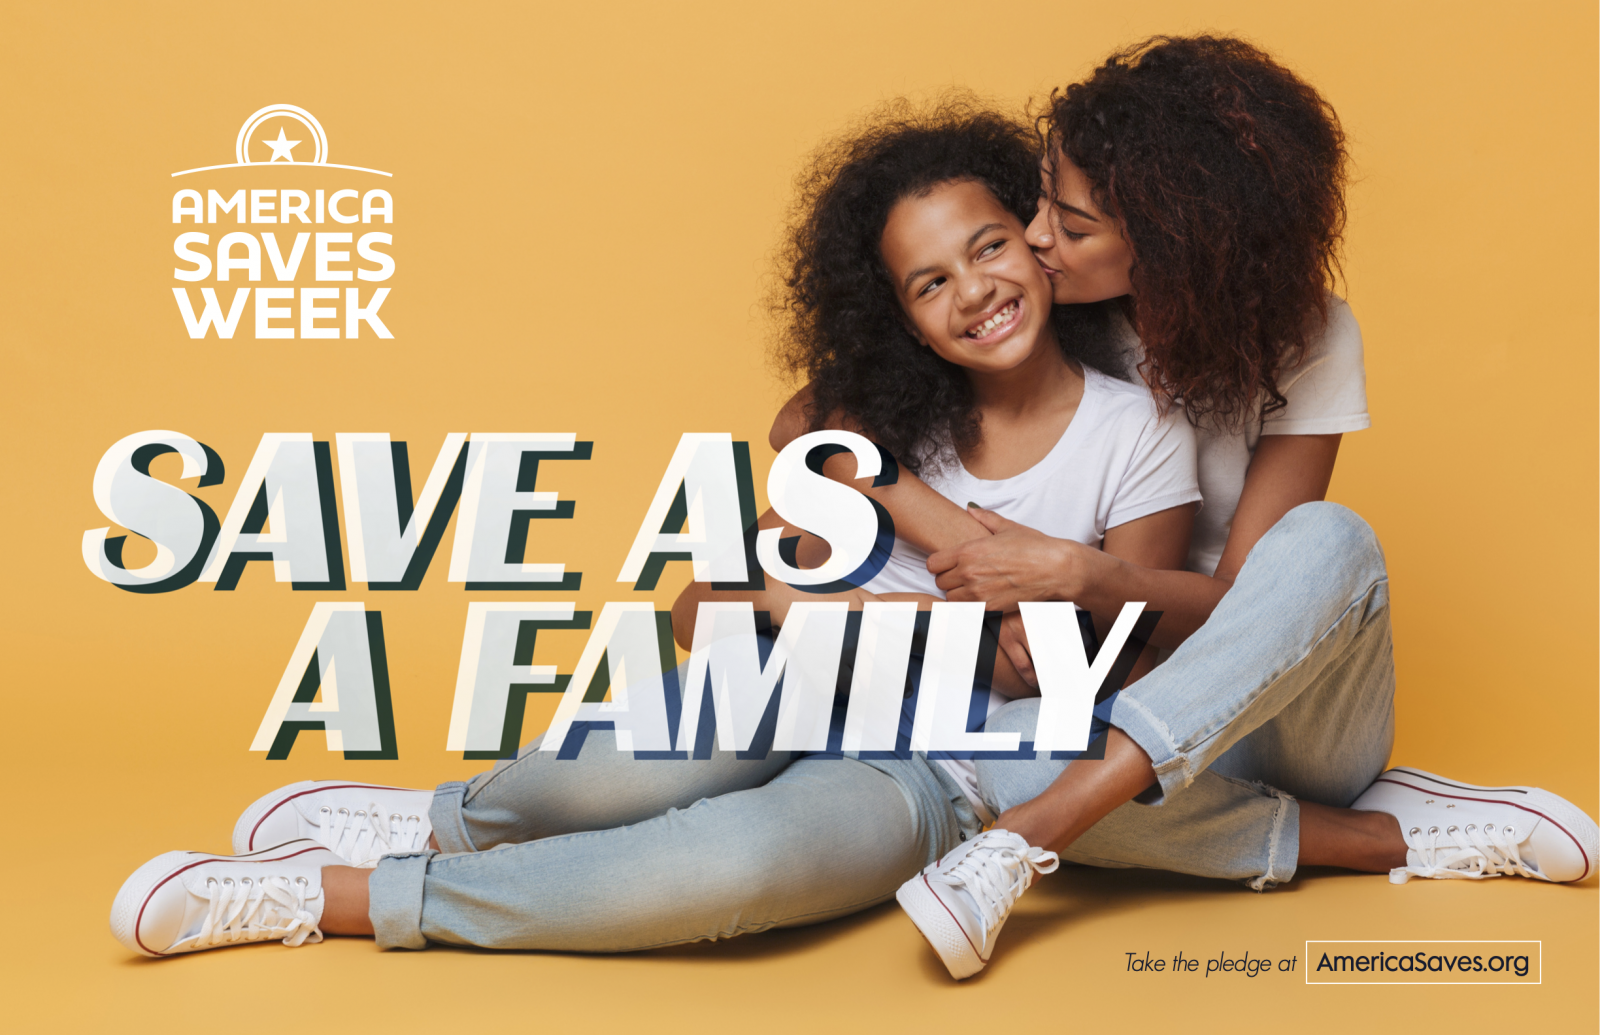 Save as a Family - America Saves Week 2021